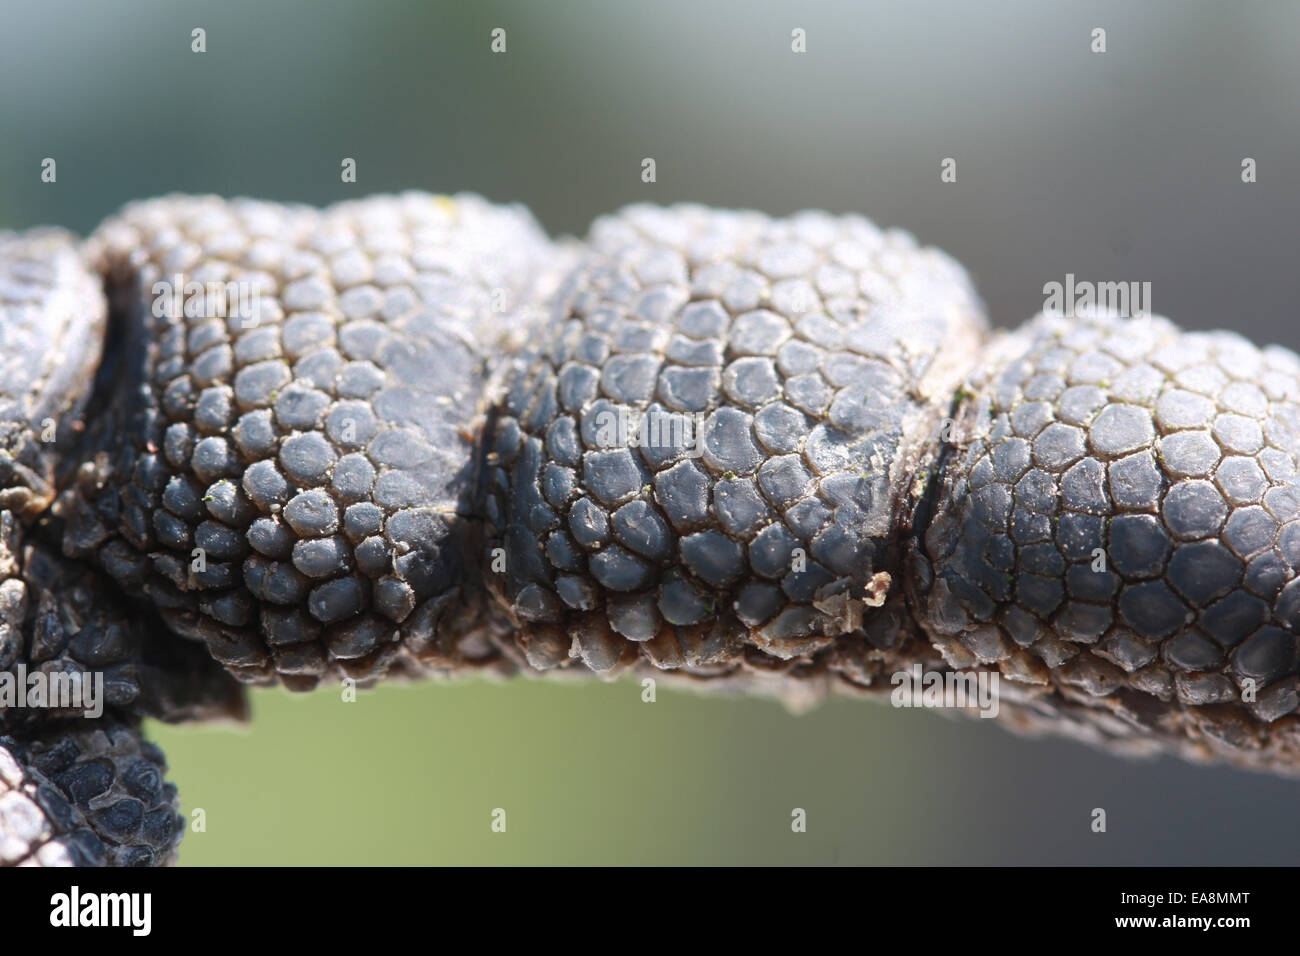 Macro of underside of a parrots foot - Stock Image